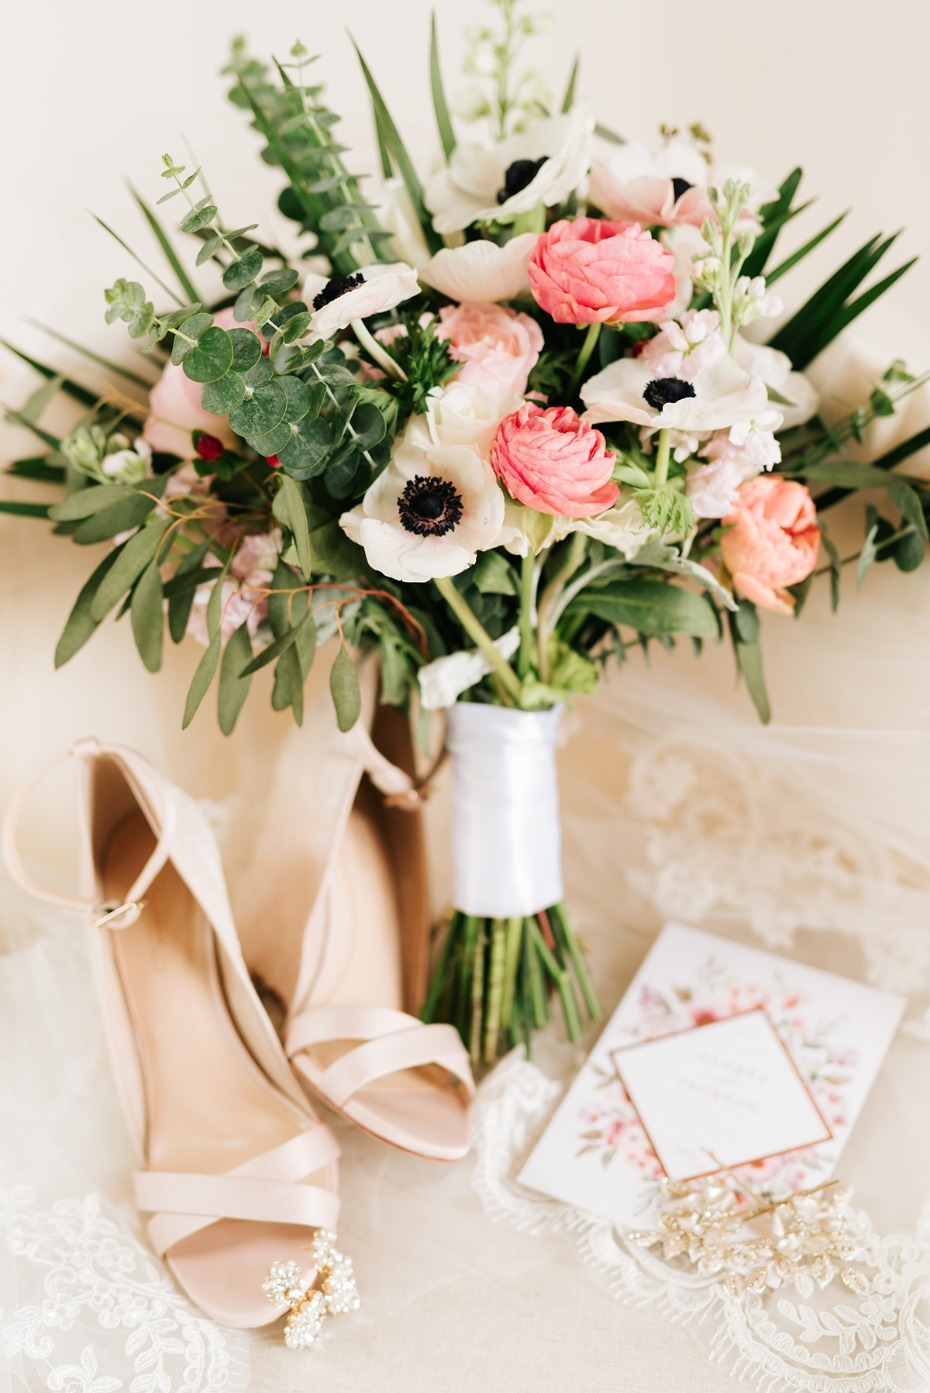 blush and white wedding bouquet idea